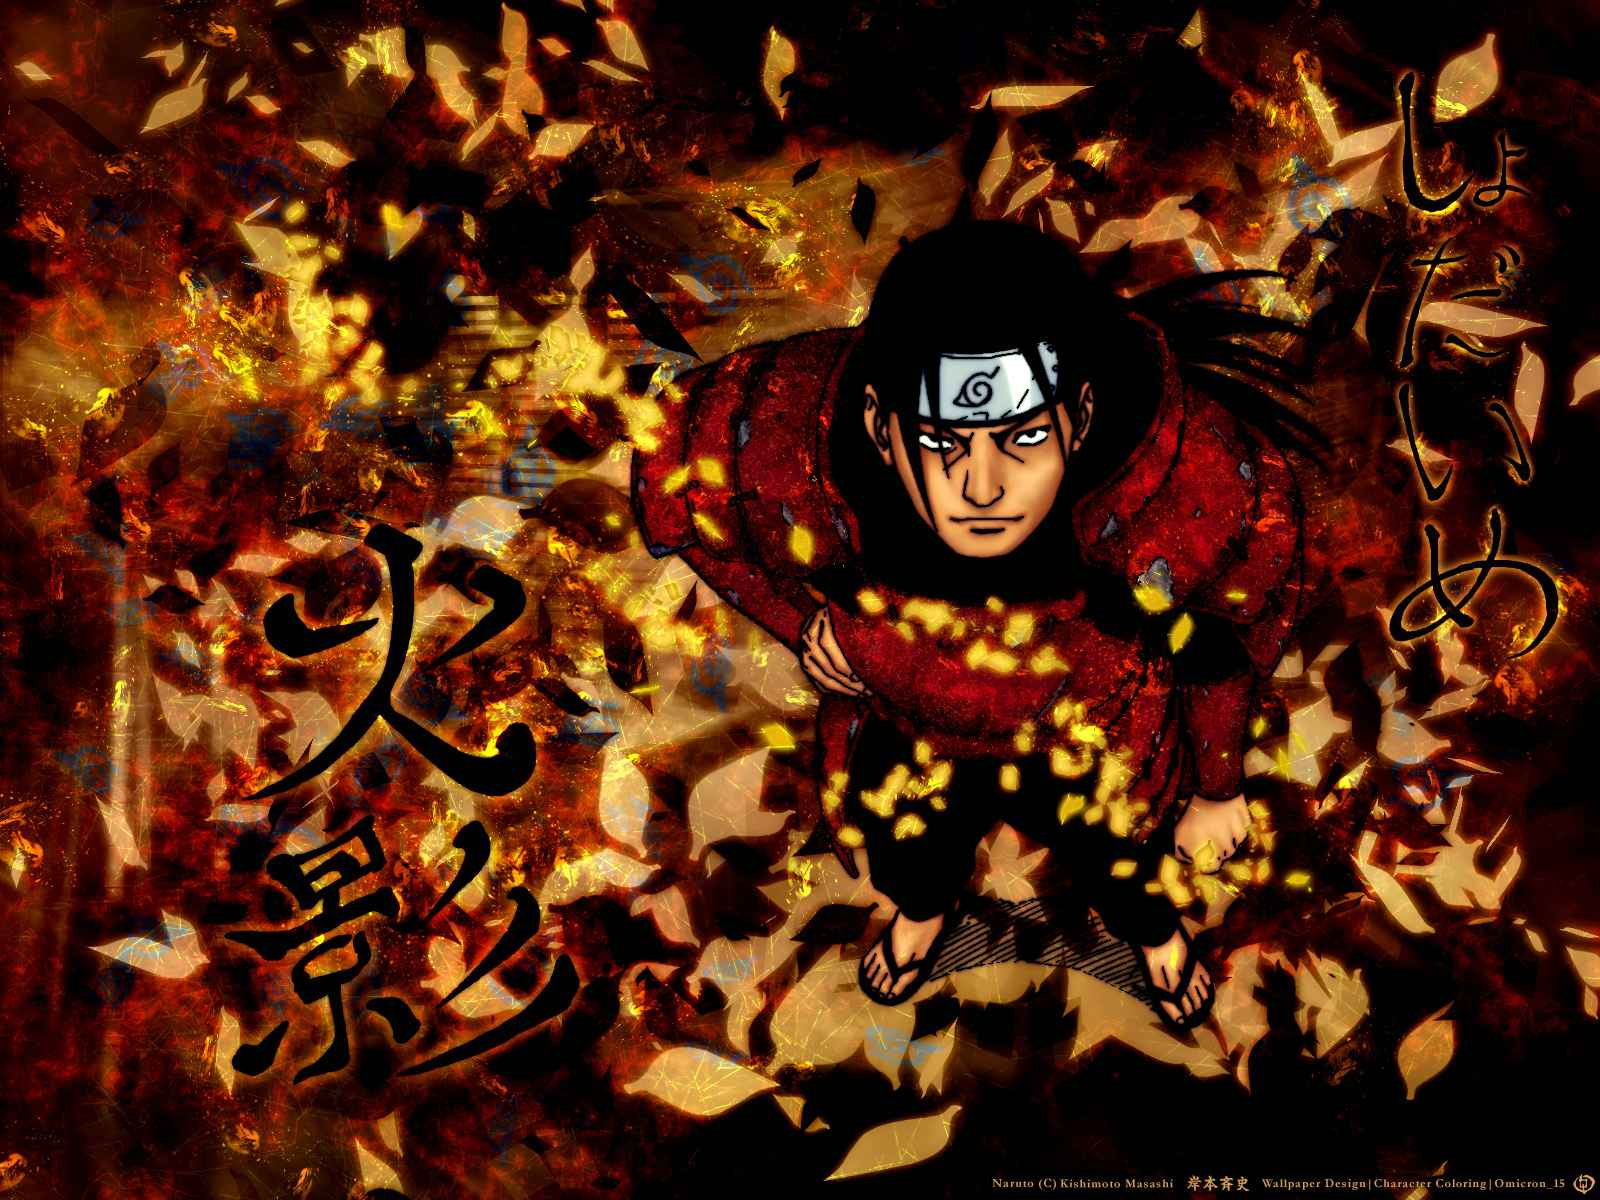 ha¬nh nan ao¢nh naruto wallpaper in naruto full hd blog hoa i nam a· download